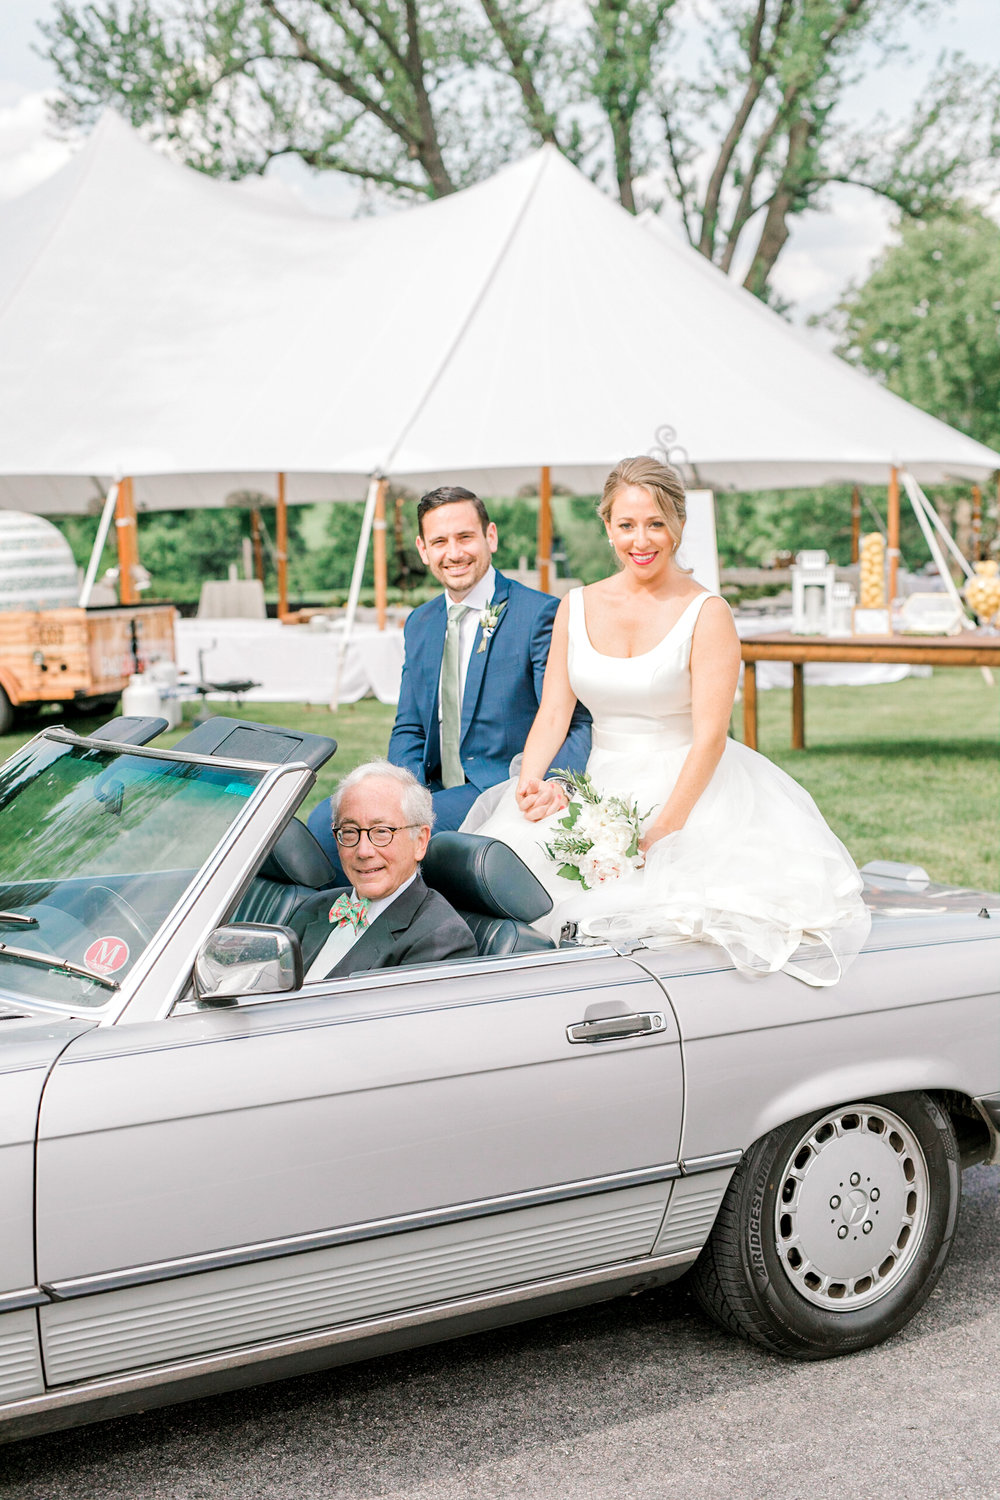 Kerry and Bill posing in this vintage Mercedes on their bright Italian themed wedding day at the Baltimore Country Club.